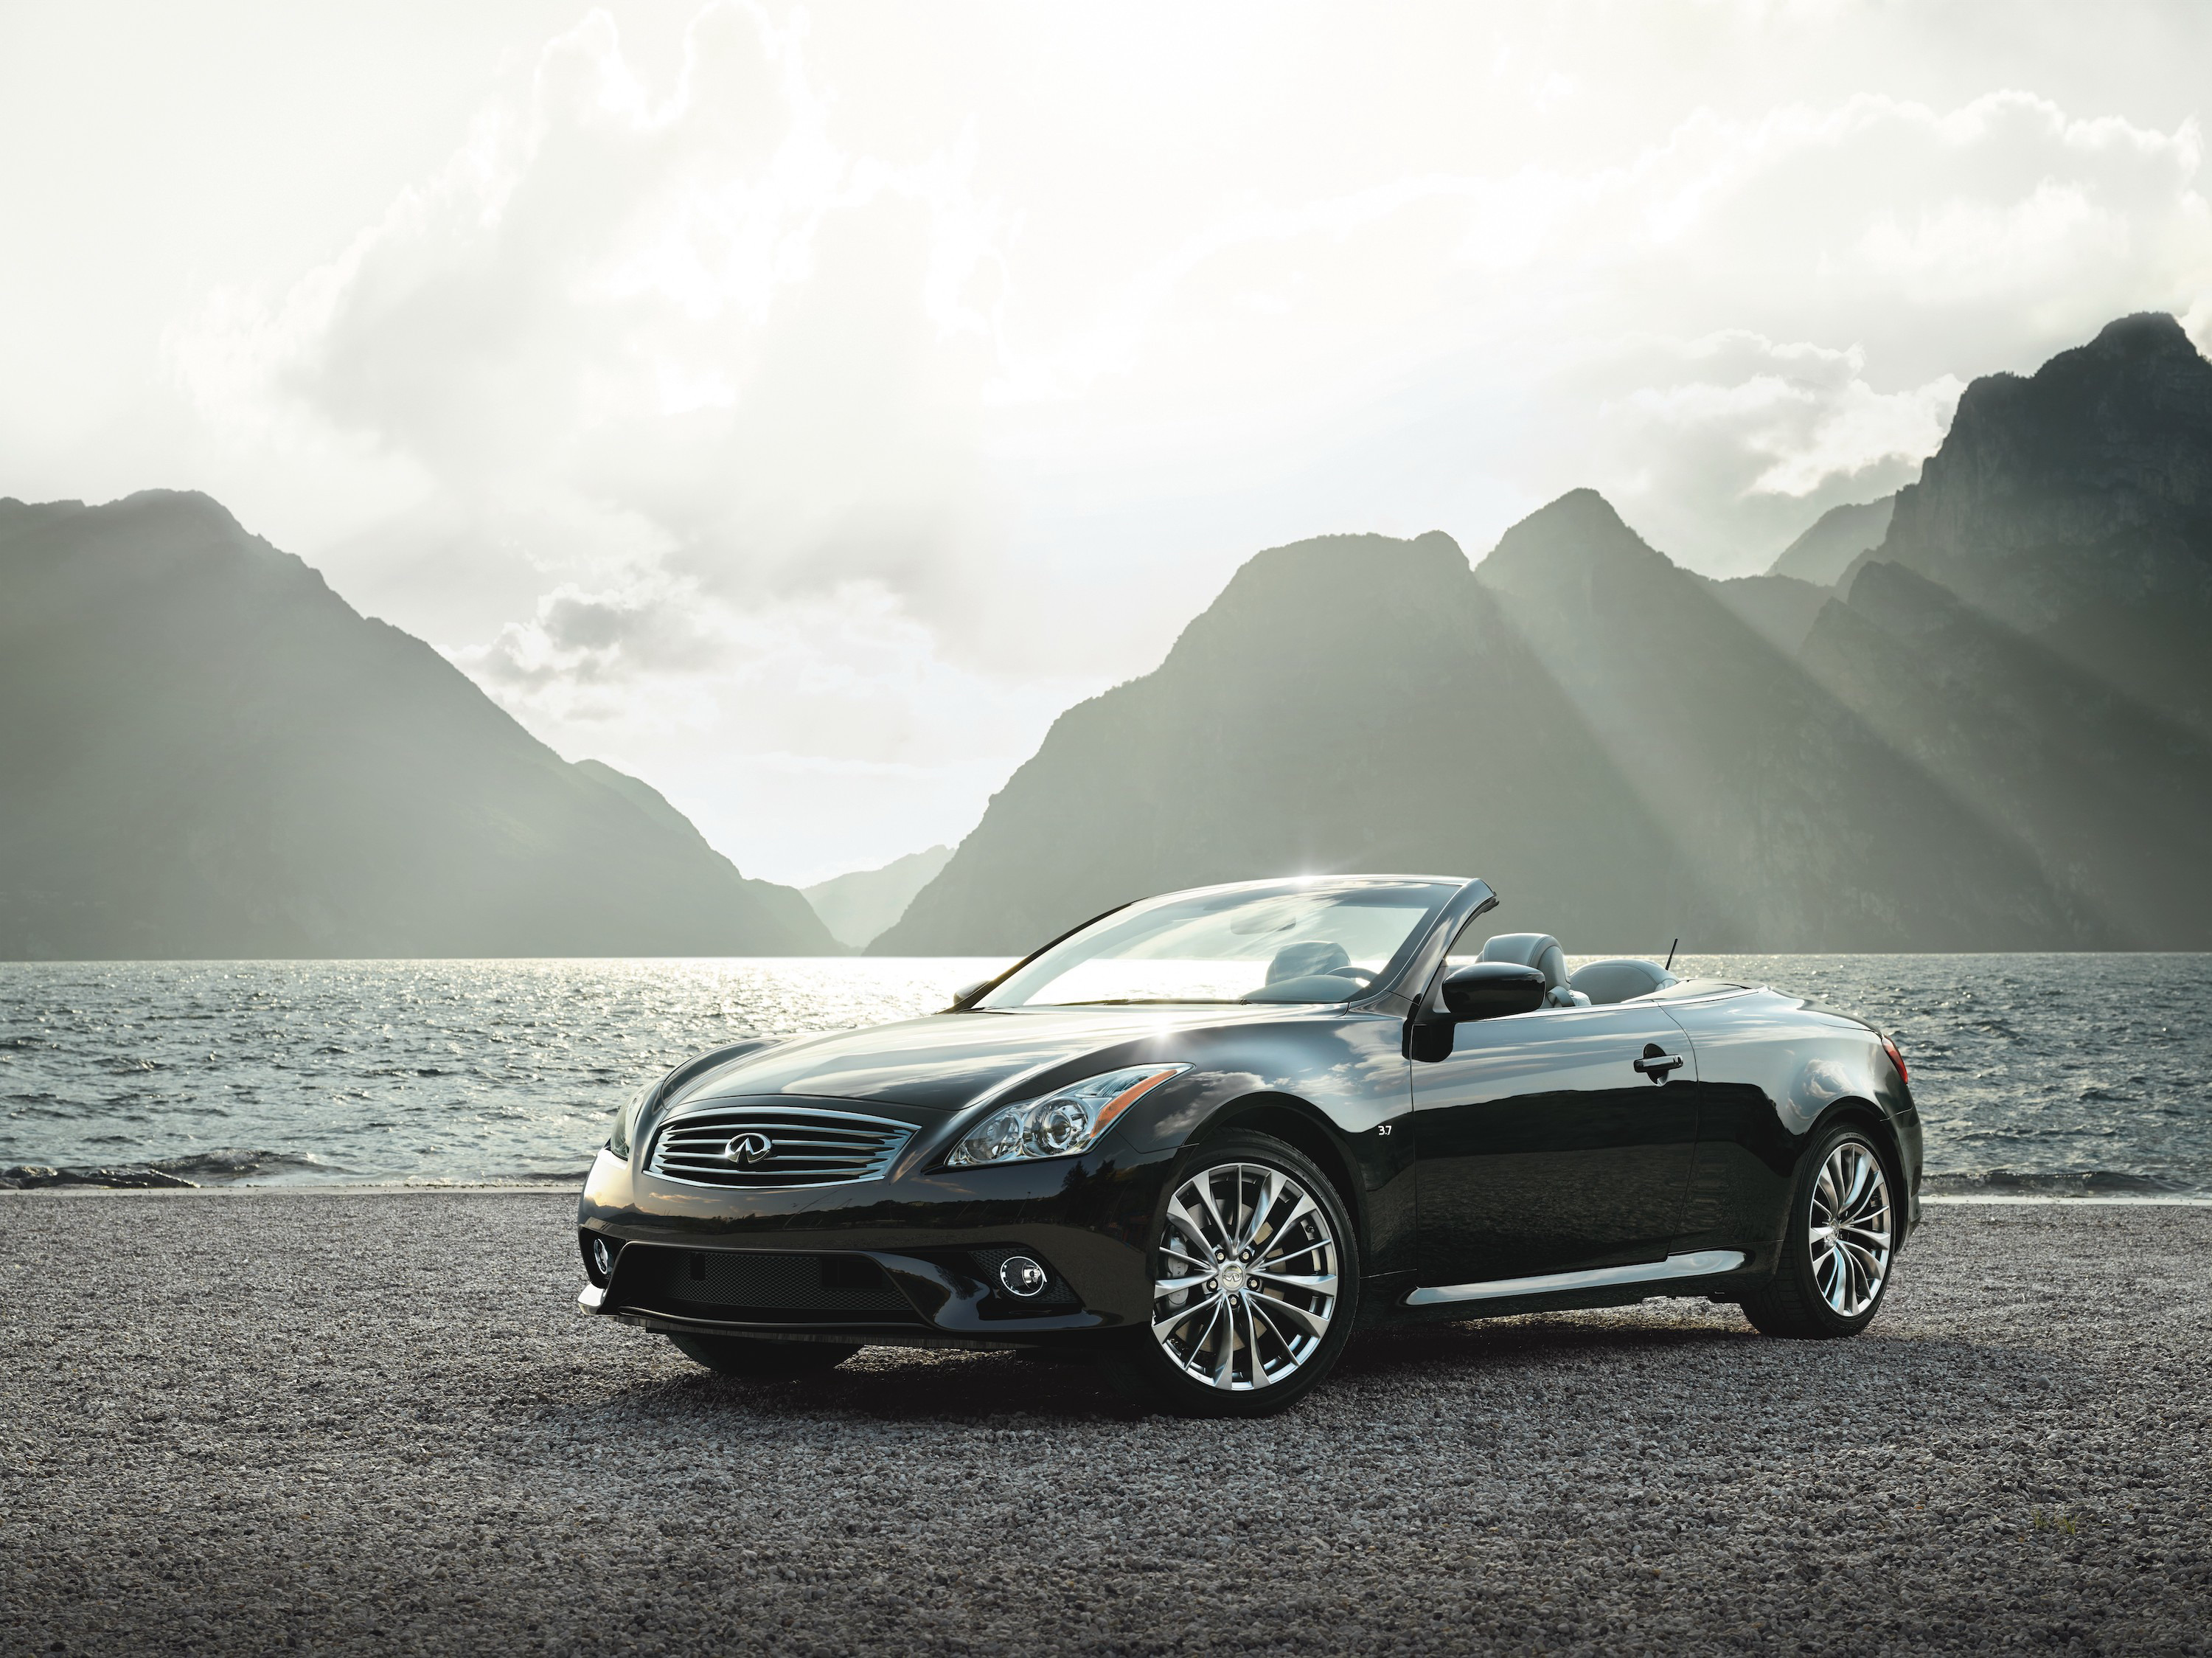 photos g coupe articles convertible bestcarmag infiniti infinity informations com makes